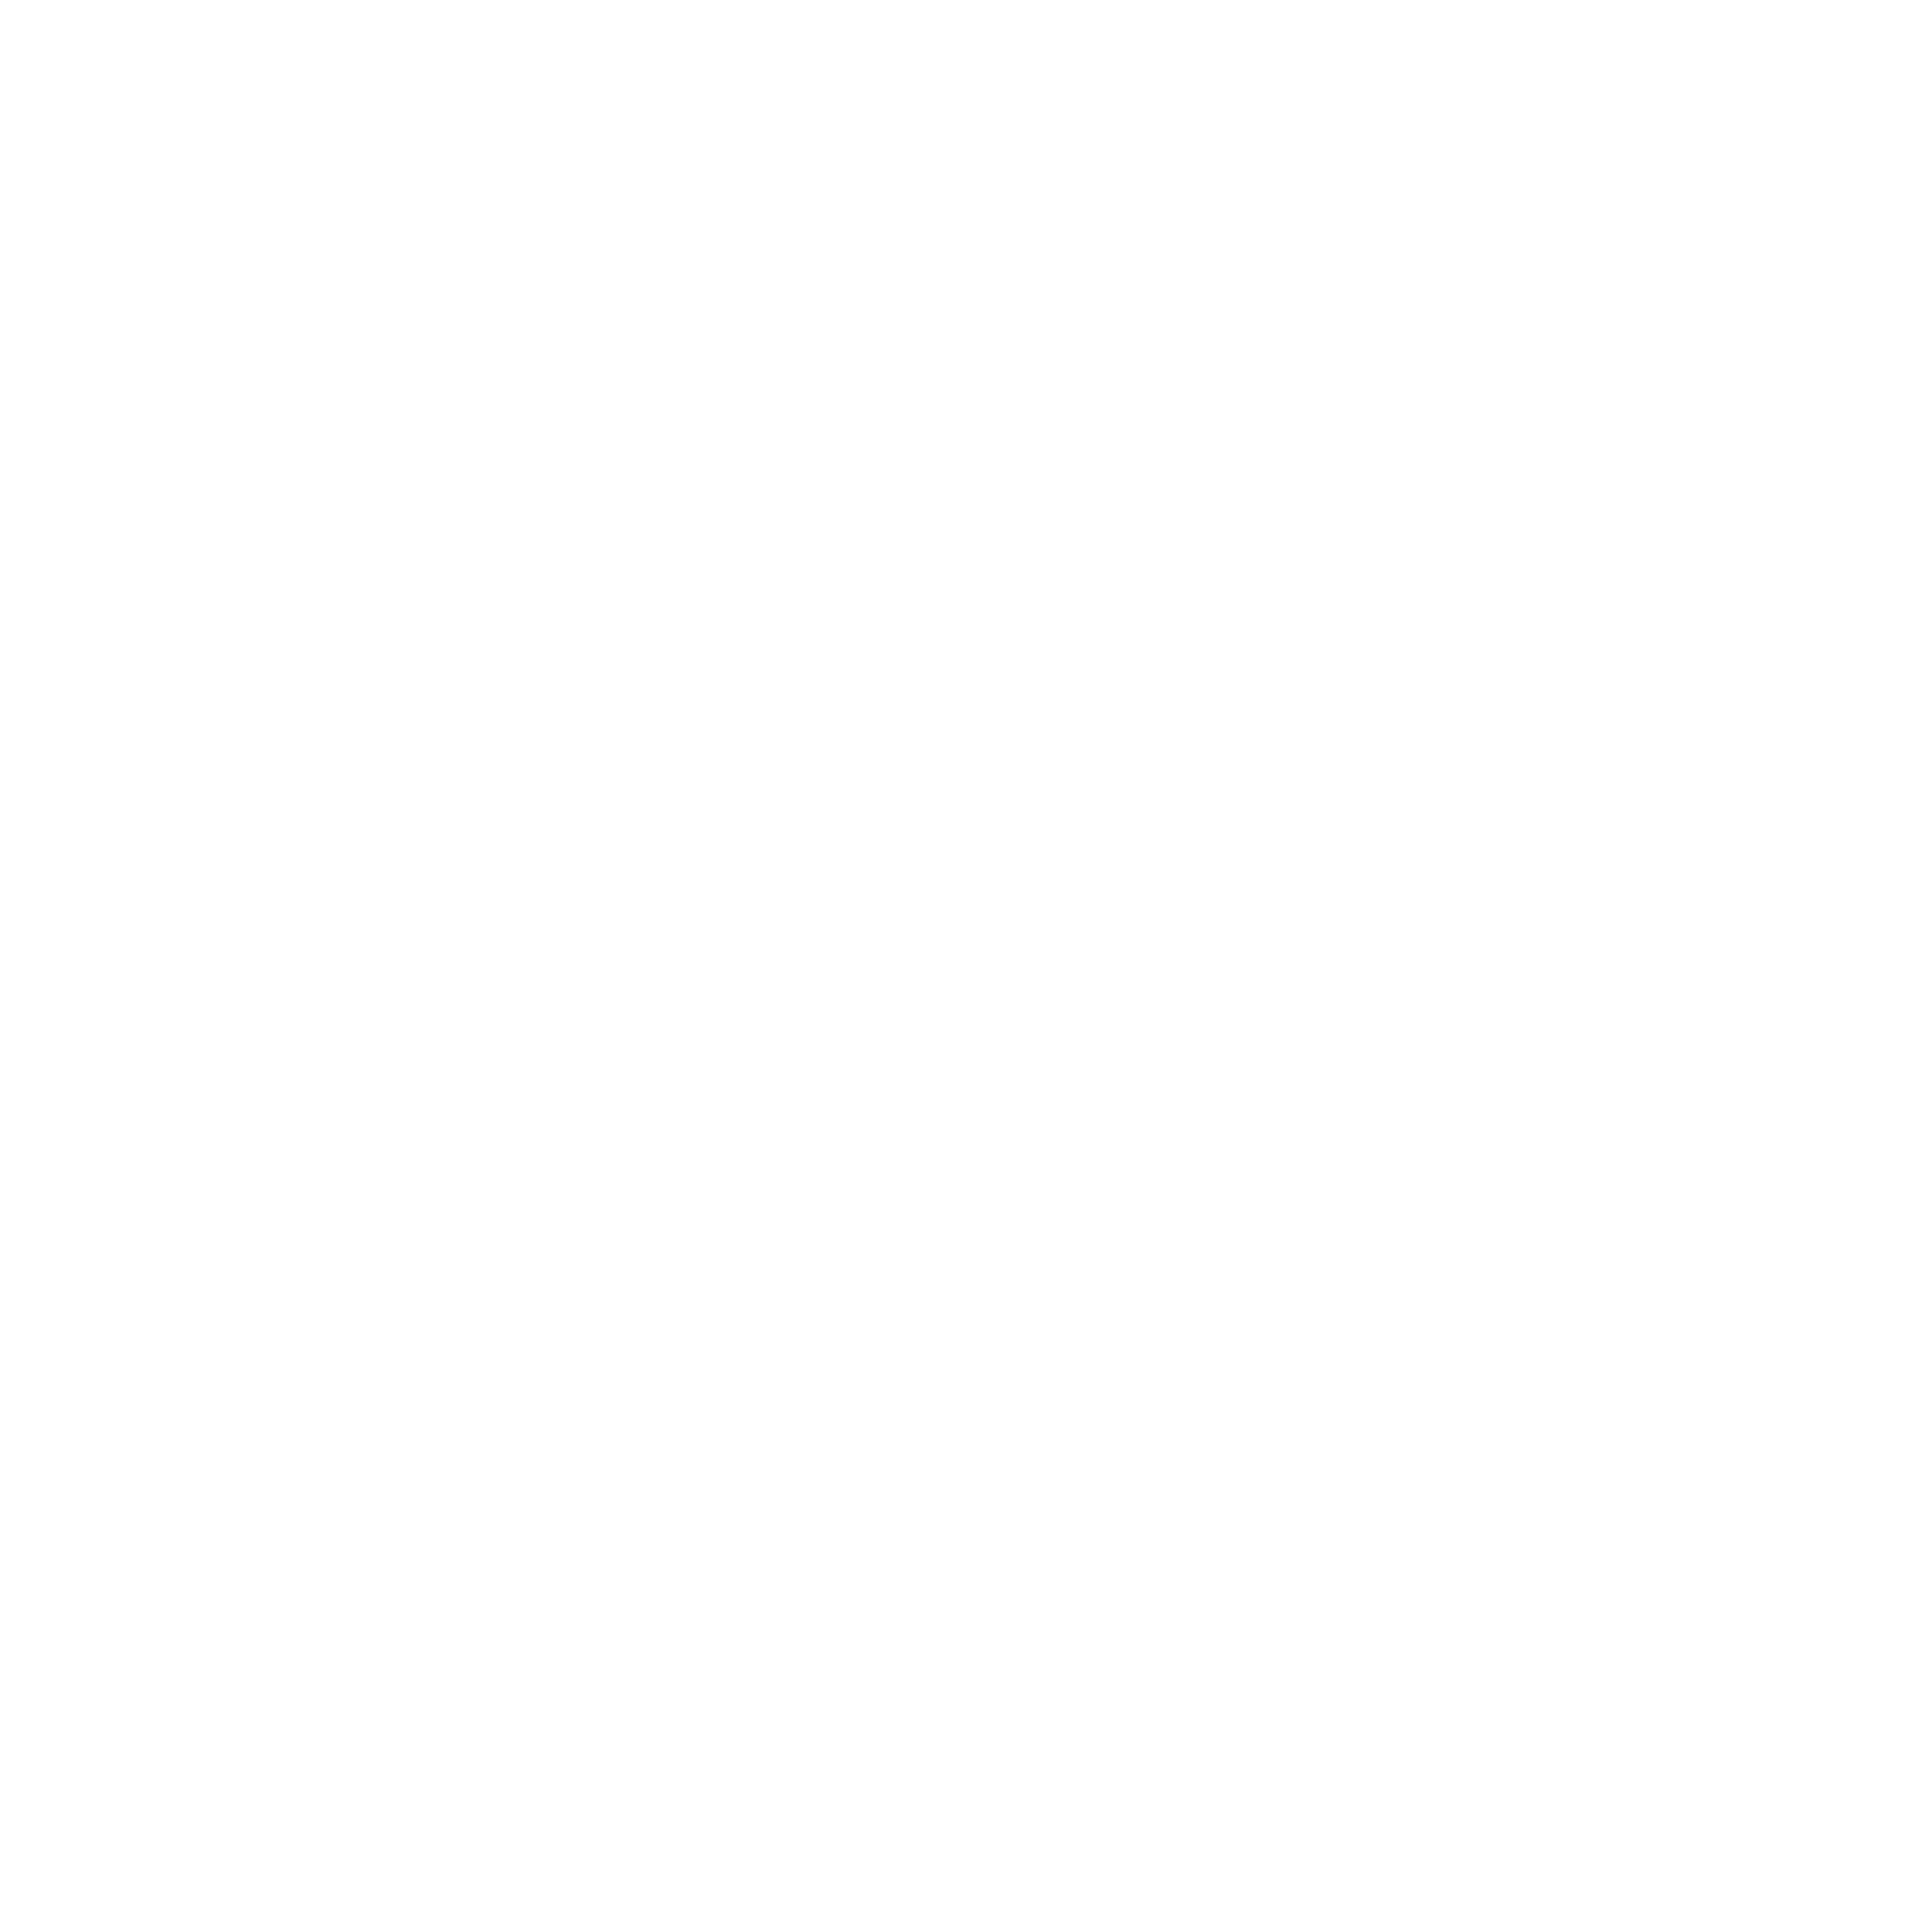 M7-Innovations-logo-B3.png